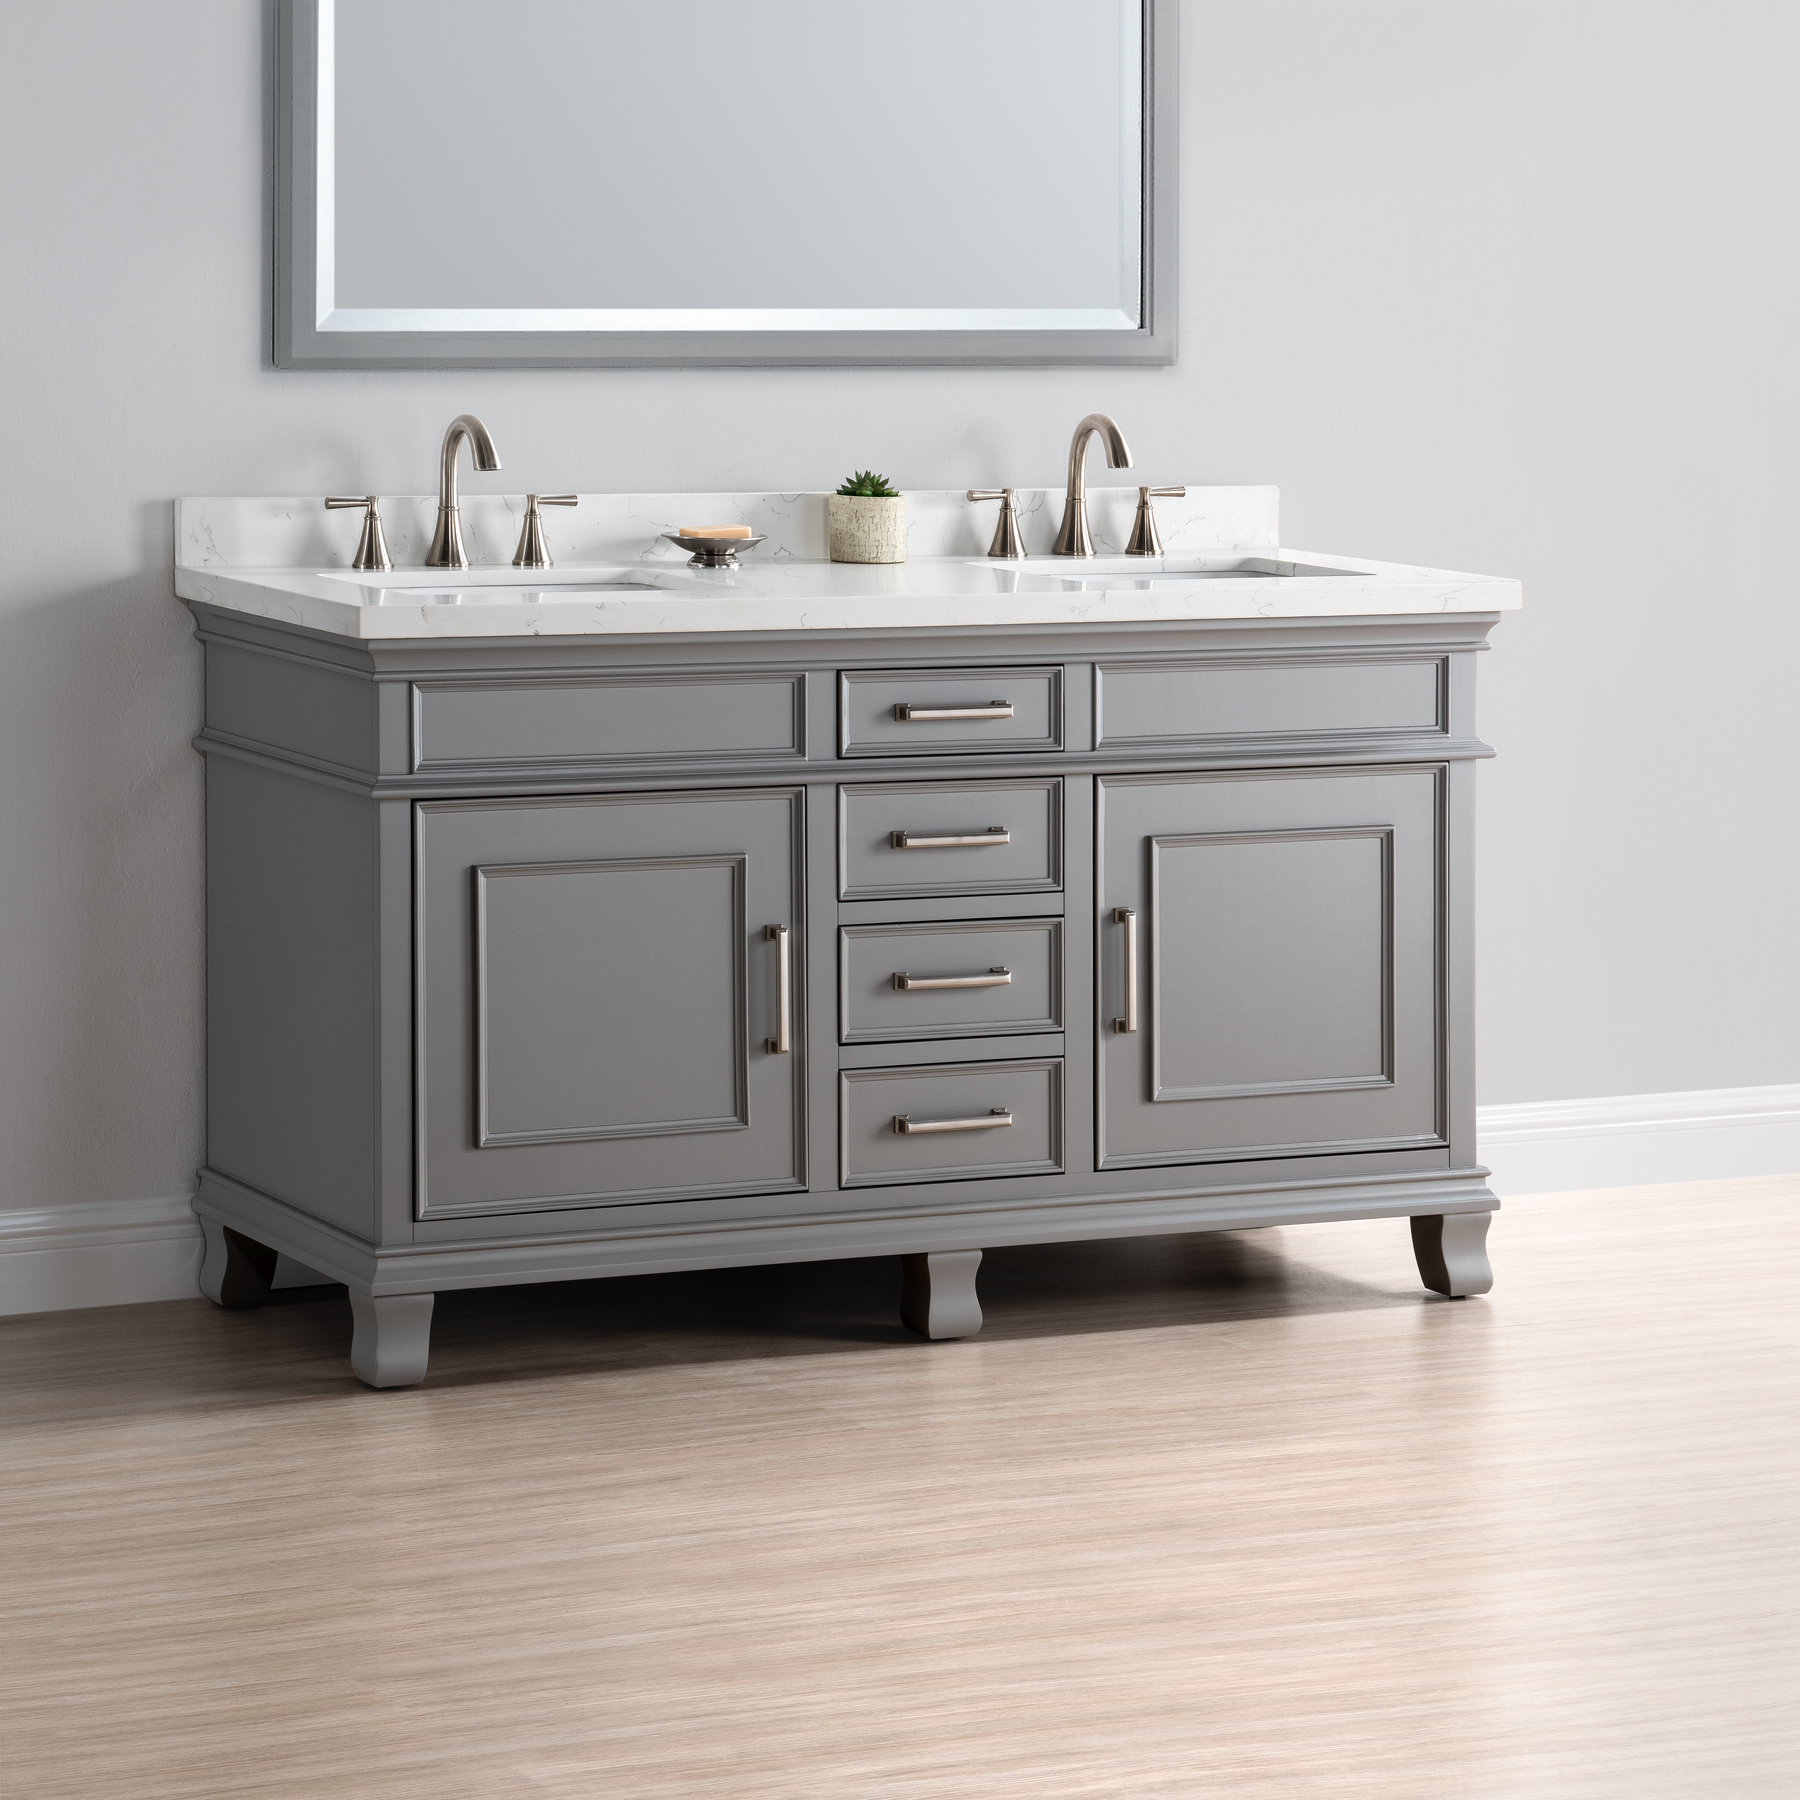 60 double sink vanity.  60 Double Sink Vanity DSC 5601 Charleston Mission Hills Furniture